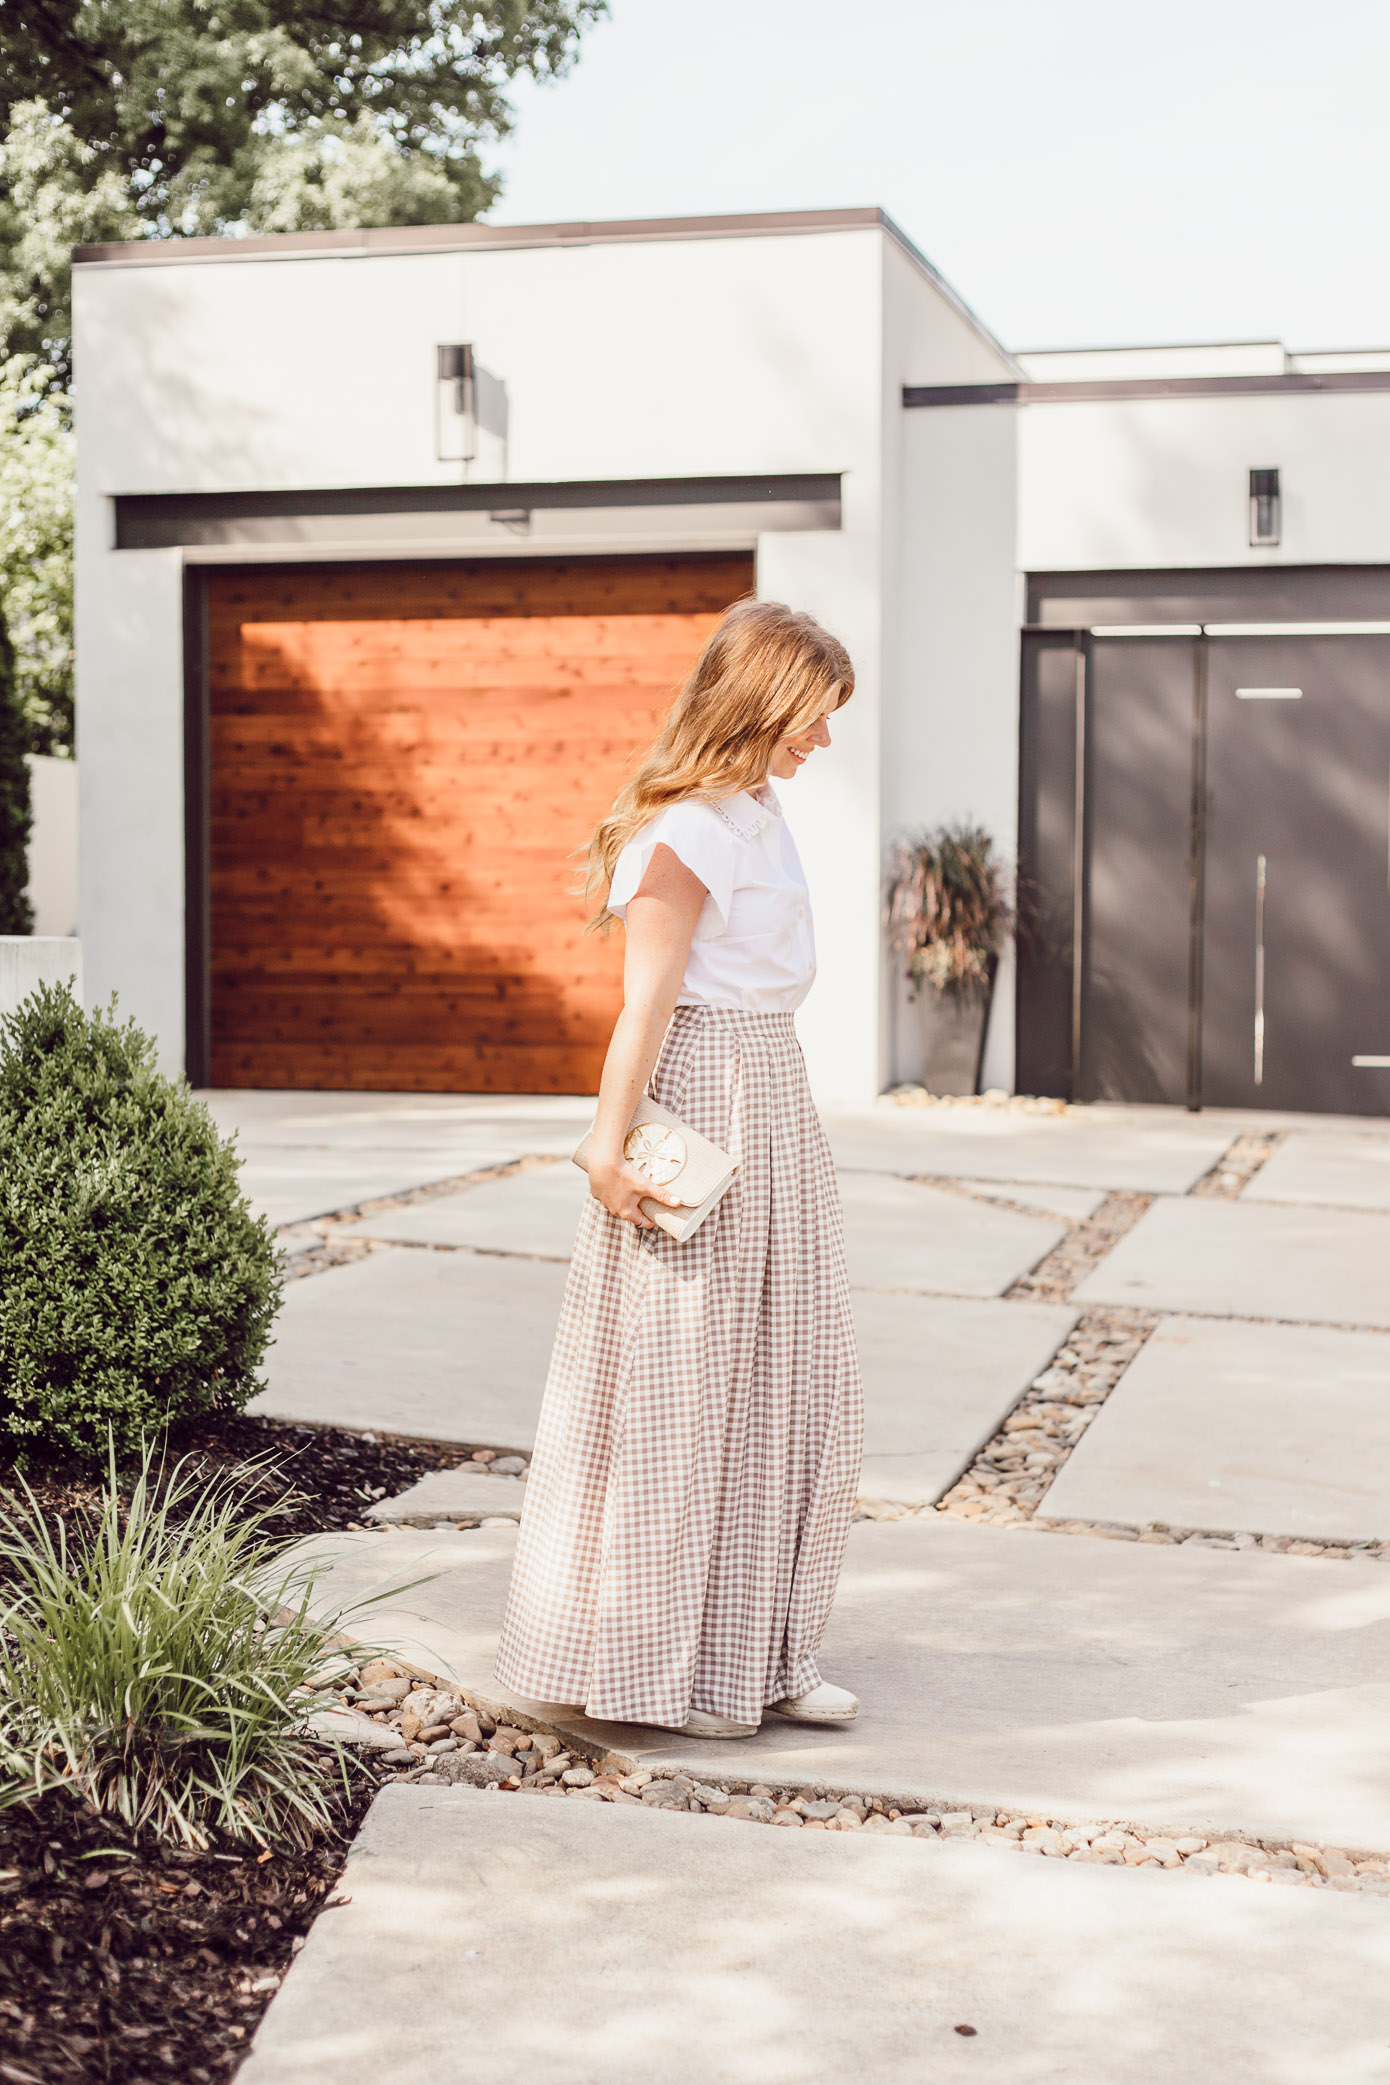 How to Style a Gingham Maxi Skirt this Summer - A Summer Gingham Maxi Skirt styled by Laura Leigh of Louella Reese #maxiskirt #gingham #southernstyle